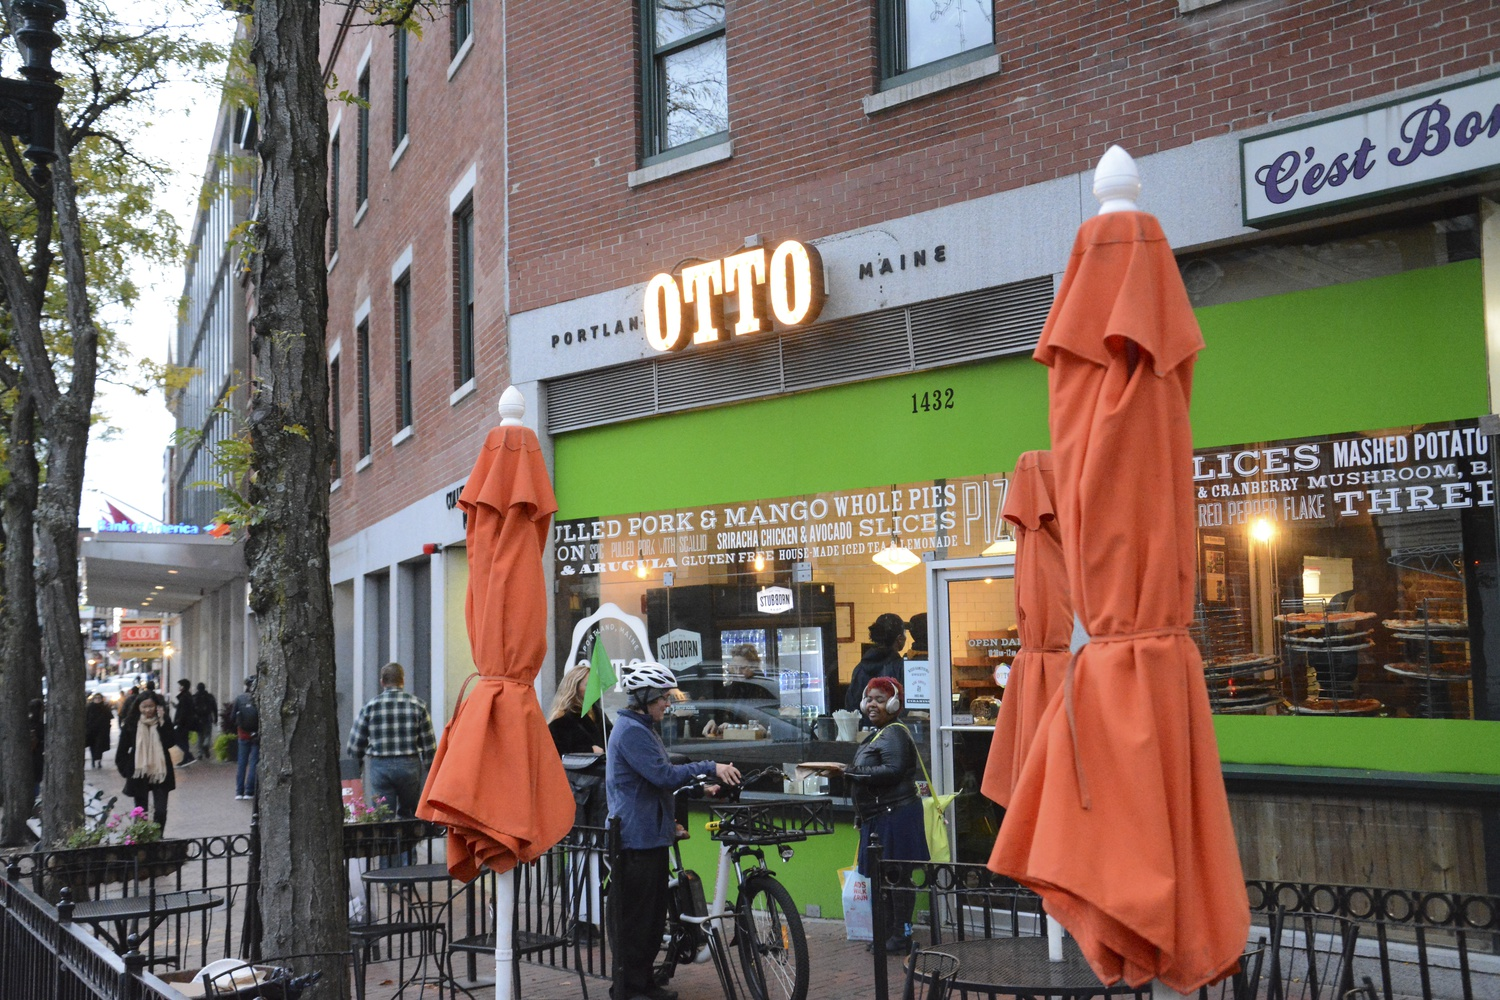 Harvard Square pizza mainstay OTTO Pizza reopened after closing due to a fire.